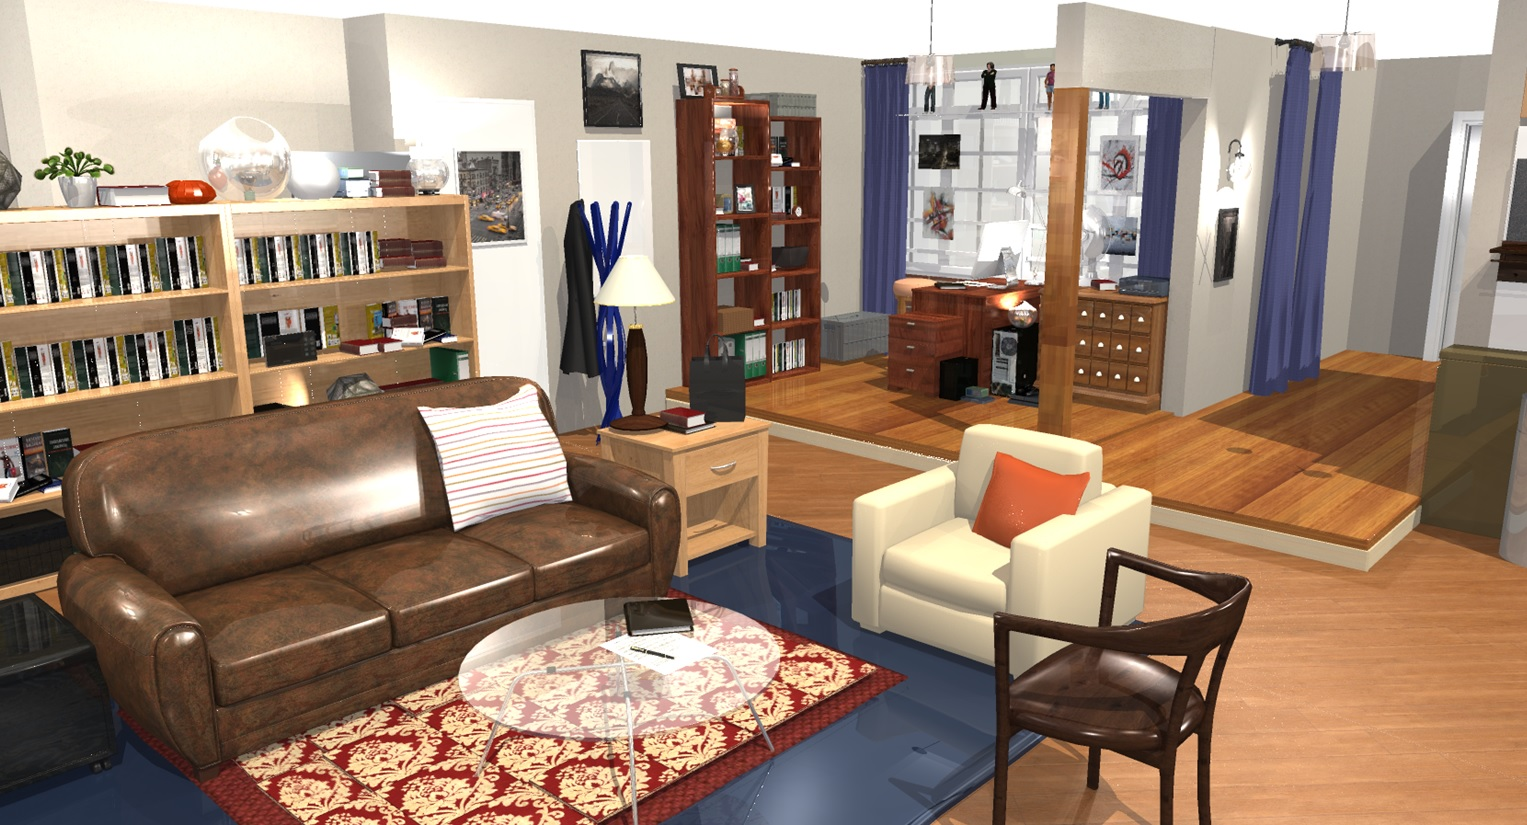 Wohnung Designen The Big Bang Theory Wohnung In 3d Homebyme